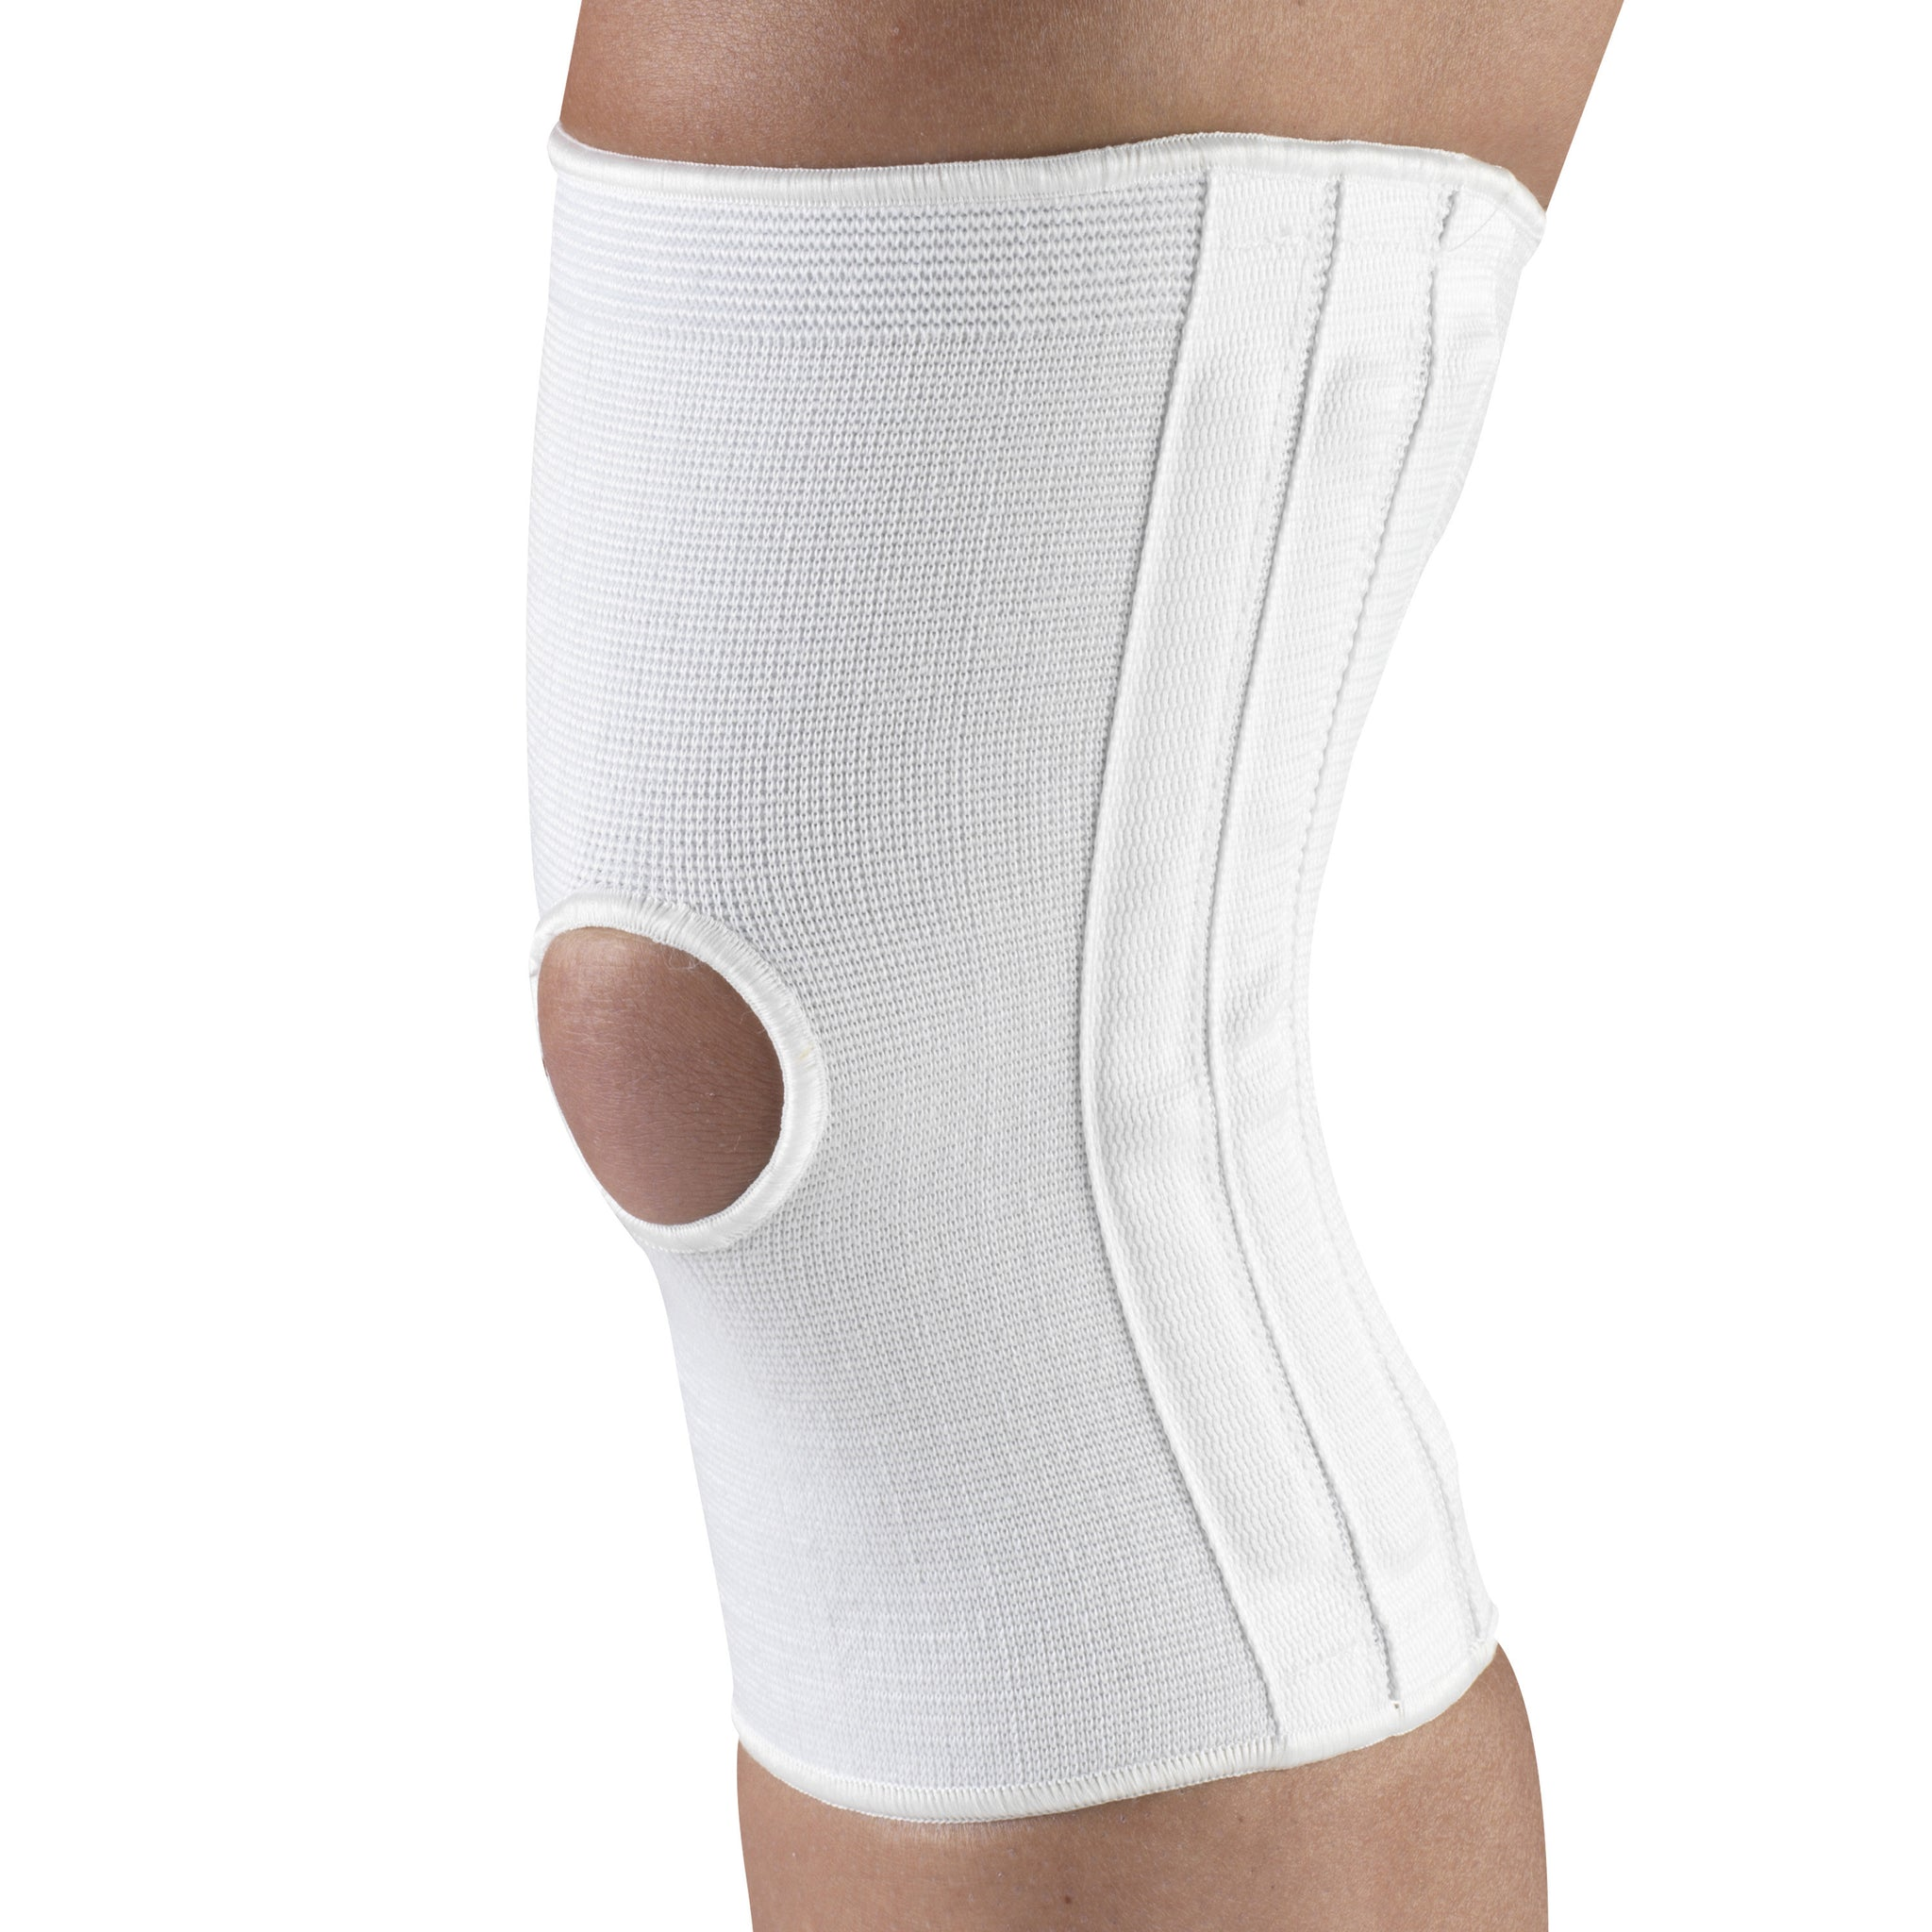 KNEE BRACE - FLEXIBLE STAYS